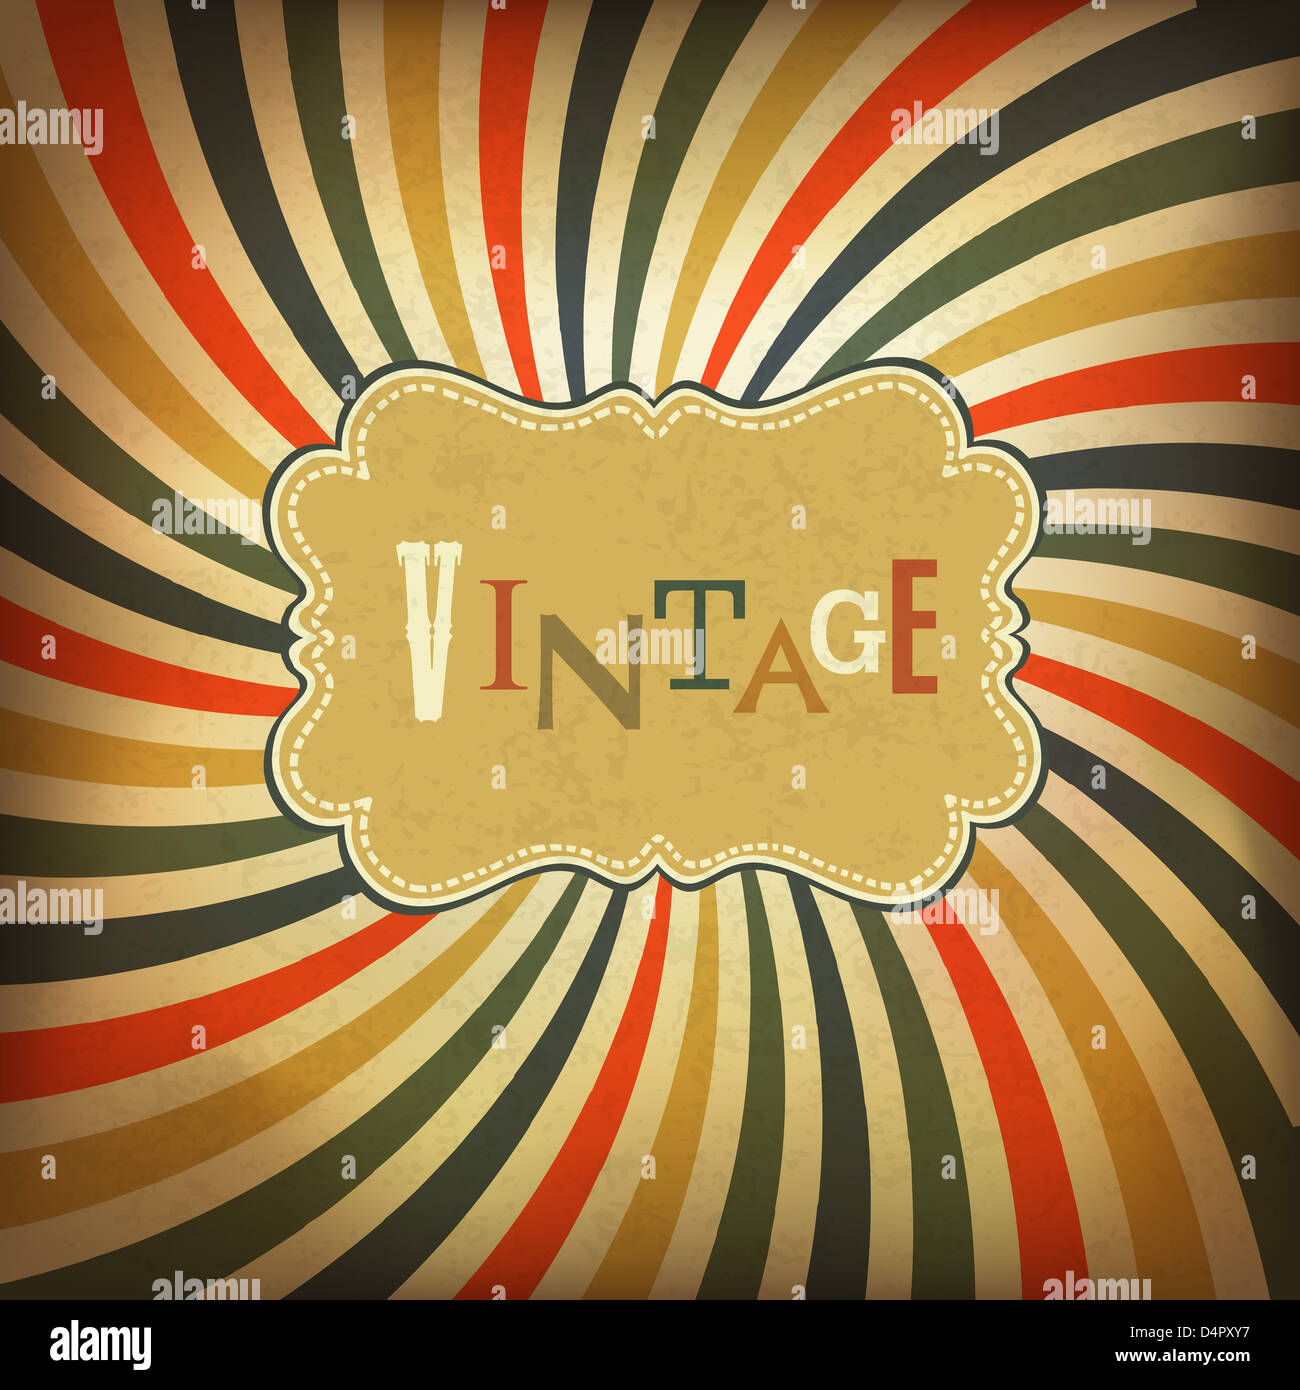 Vintage Grunge background Photo Stock